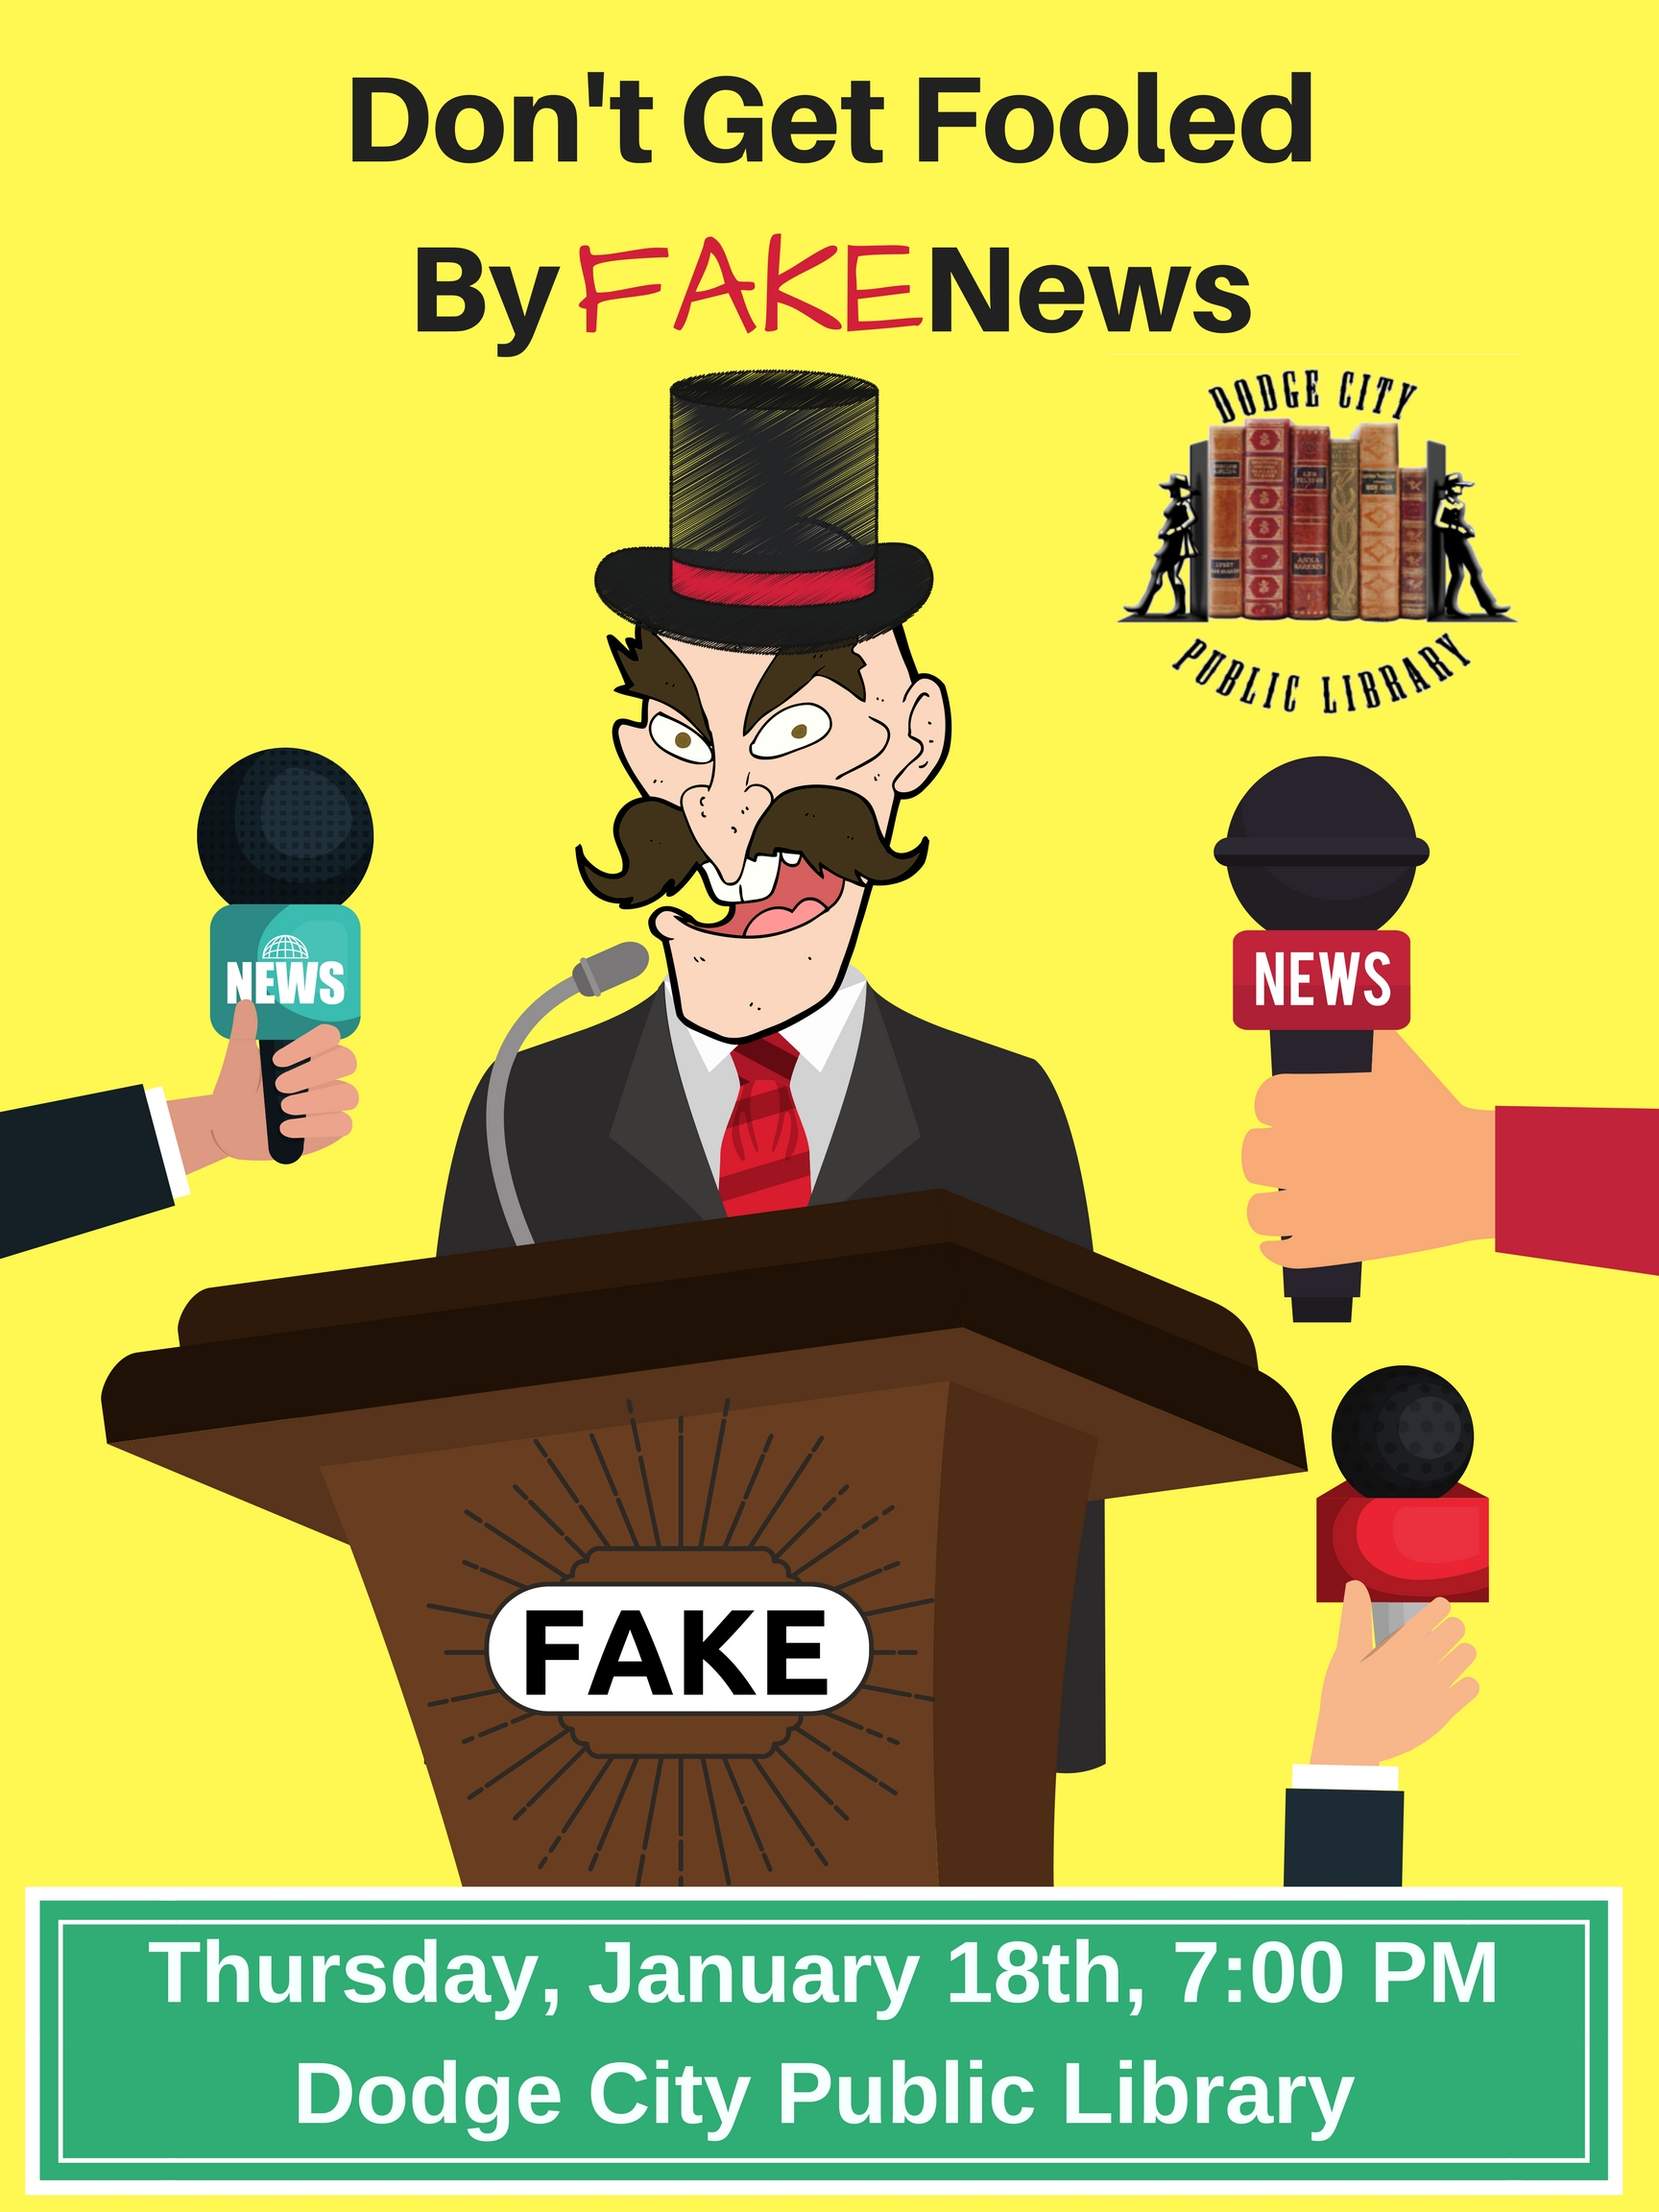 Don't Get Fooled by Fake News